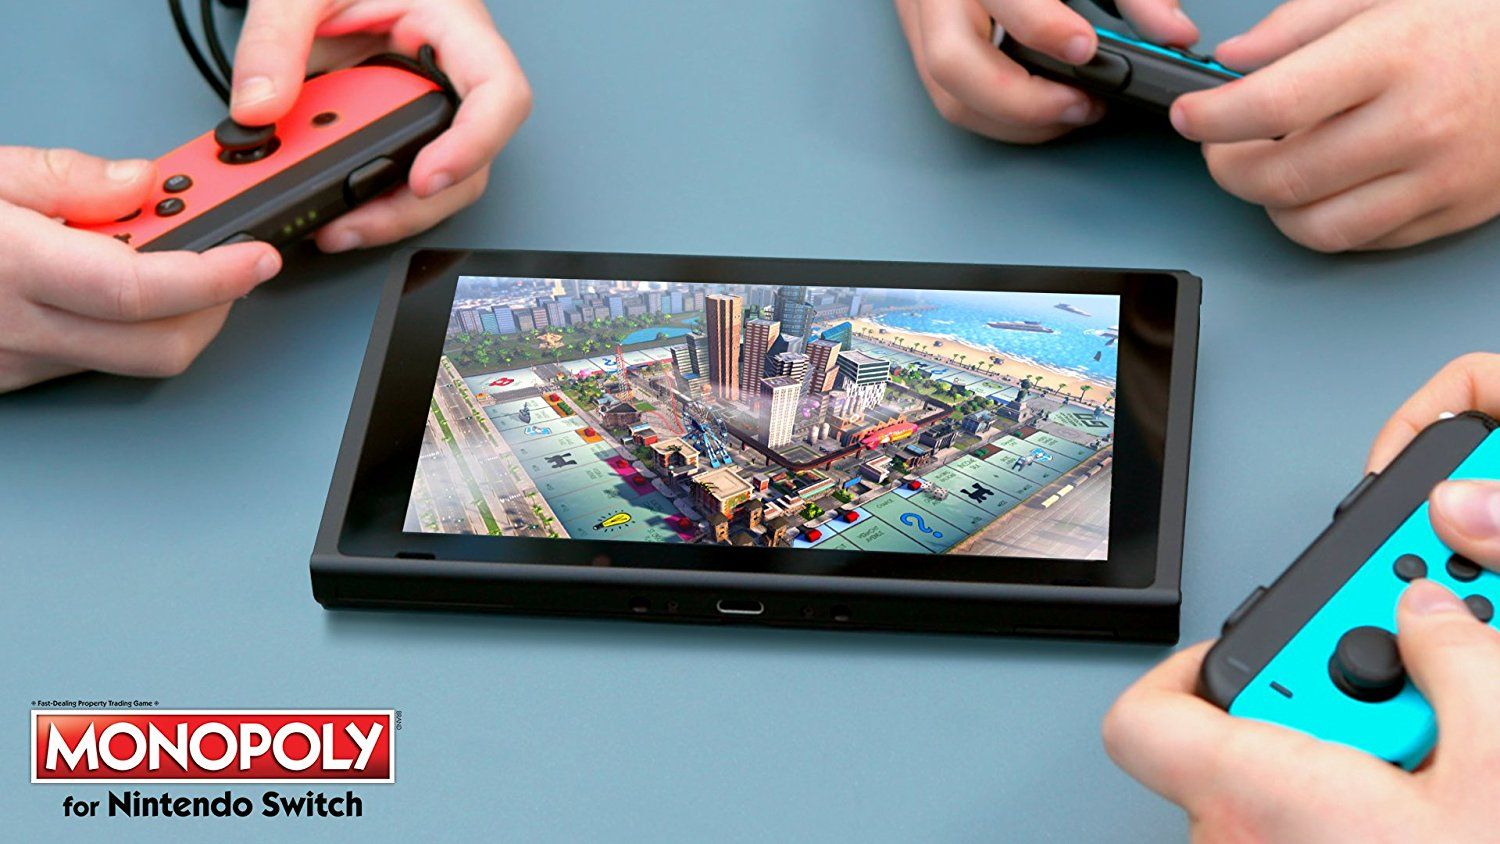 Monopoly (Nintendo Switch) - 4